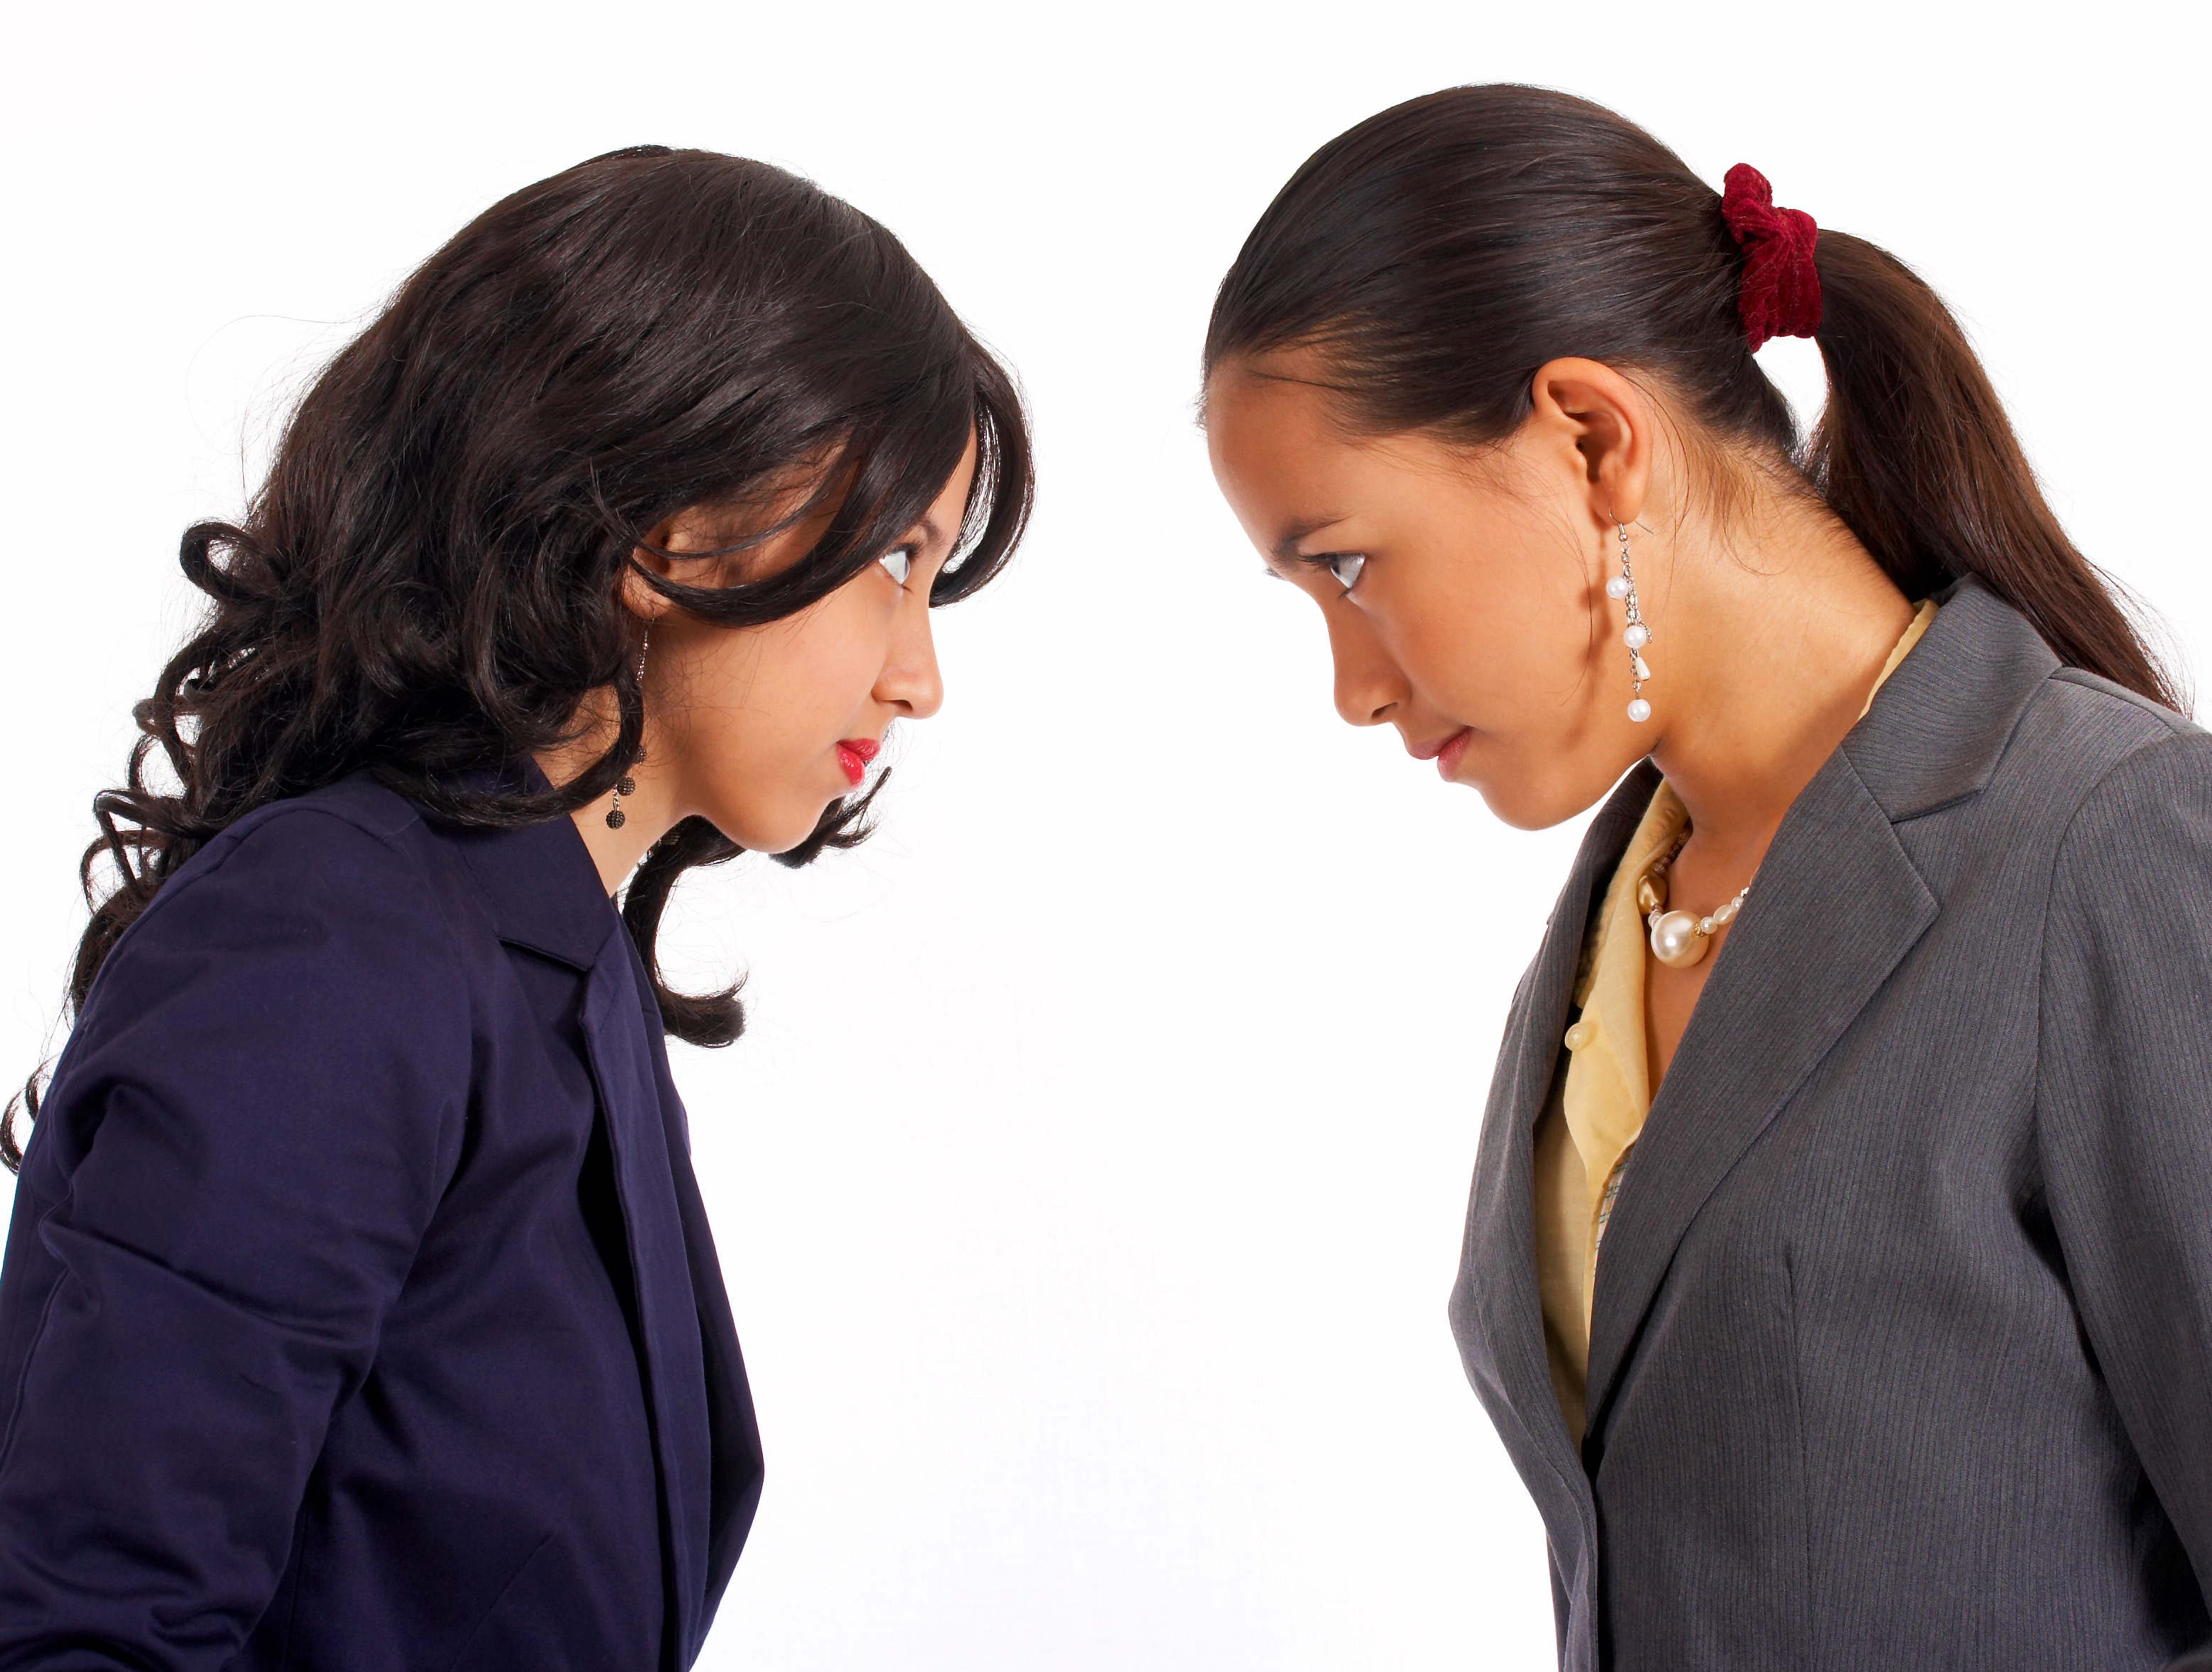 How to Successfully Defuse Conflicts at Work